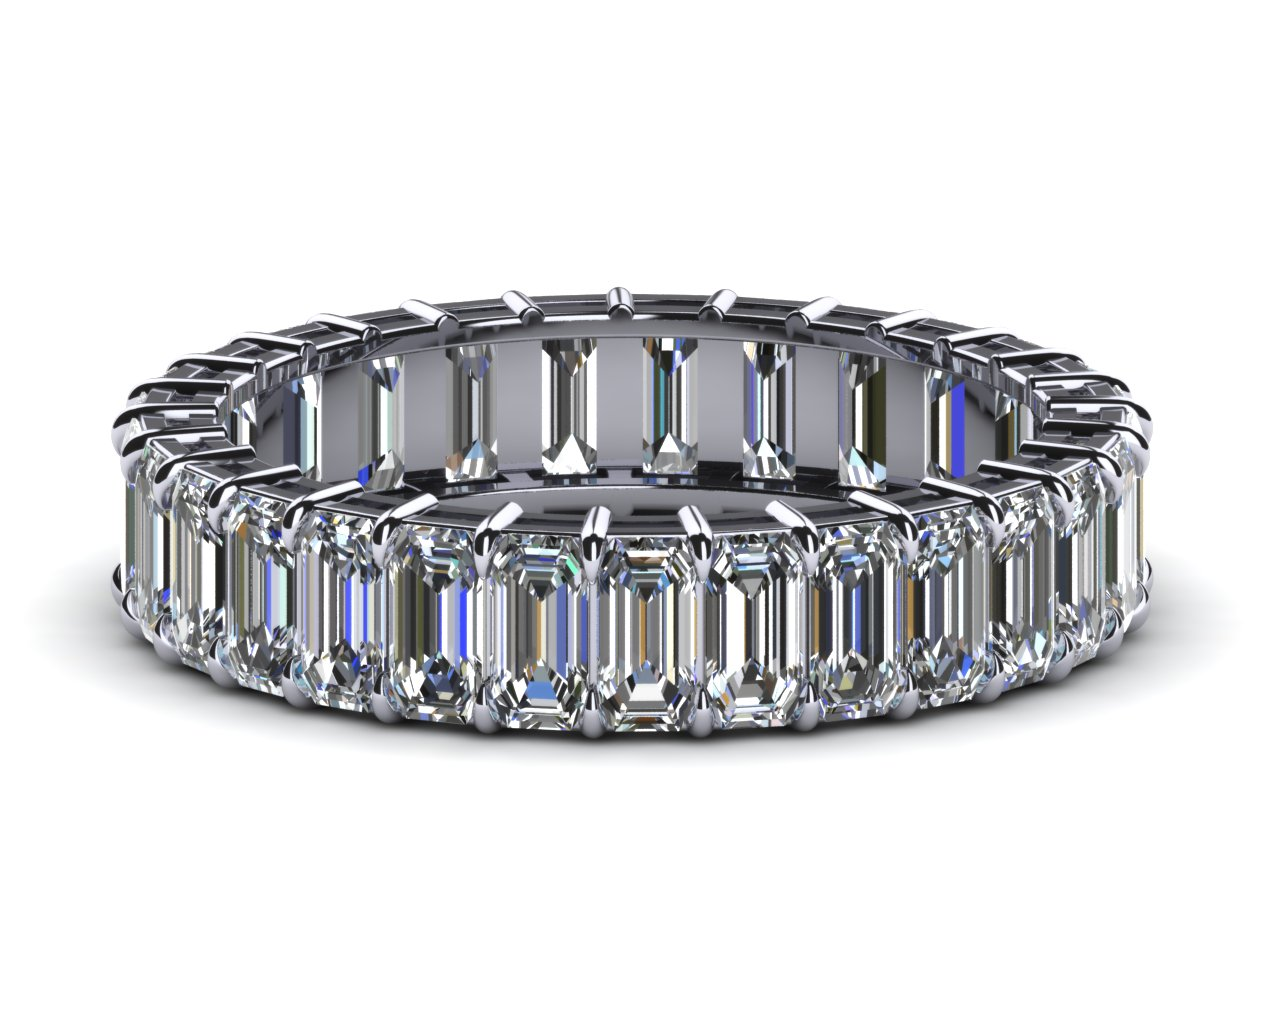 Platinum Emerald Cut Diamond Eternity Band 3 Carats Tdw. Unusual Engagement Rings. Numberless Watches. Women's Bangle Bracelets. Wolf Head Pendant. Beaded Rings. Bmw Ball Watches. Colored Stone Rings. Square Medallion